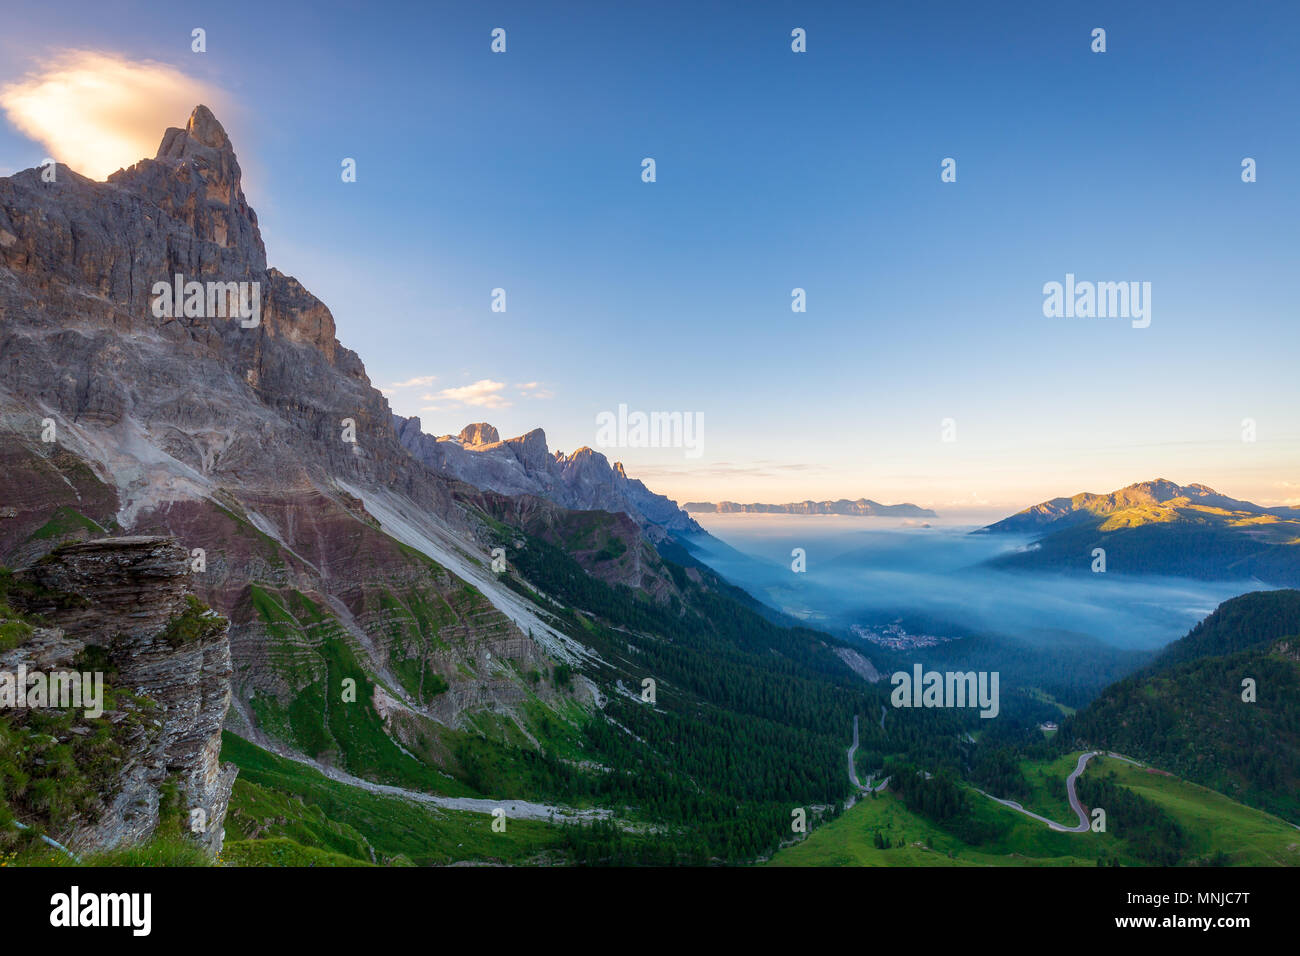 The Rolle Pass (Italian: Passo Rolle) at sunrise, Trentino, Italy - Stock Image